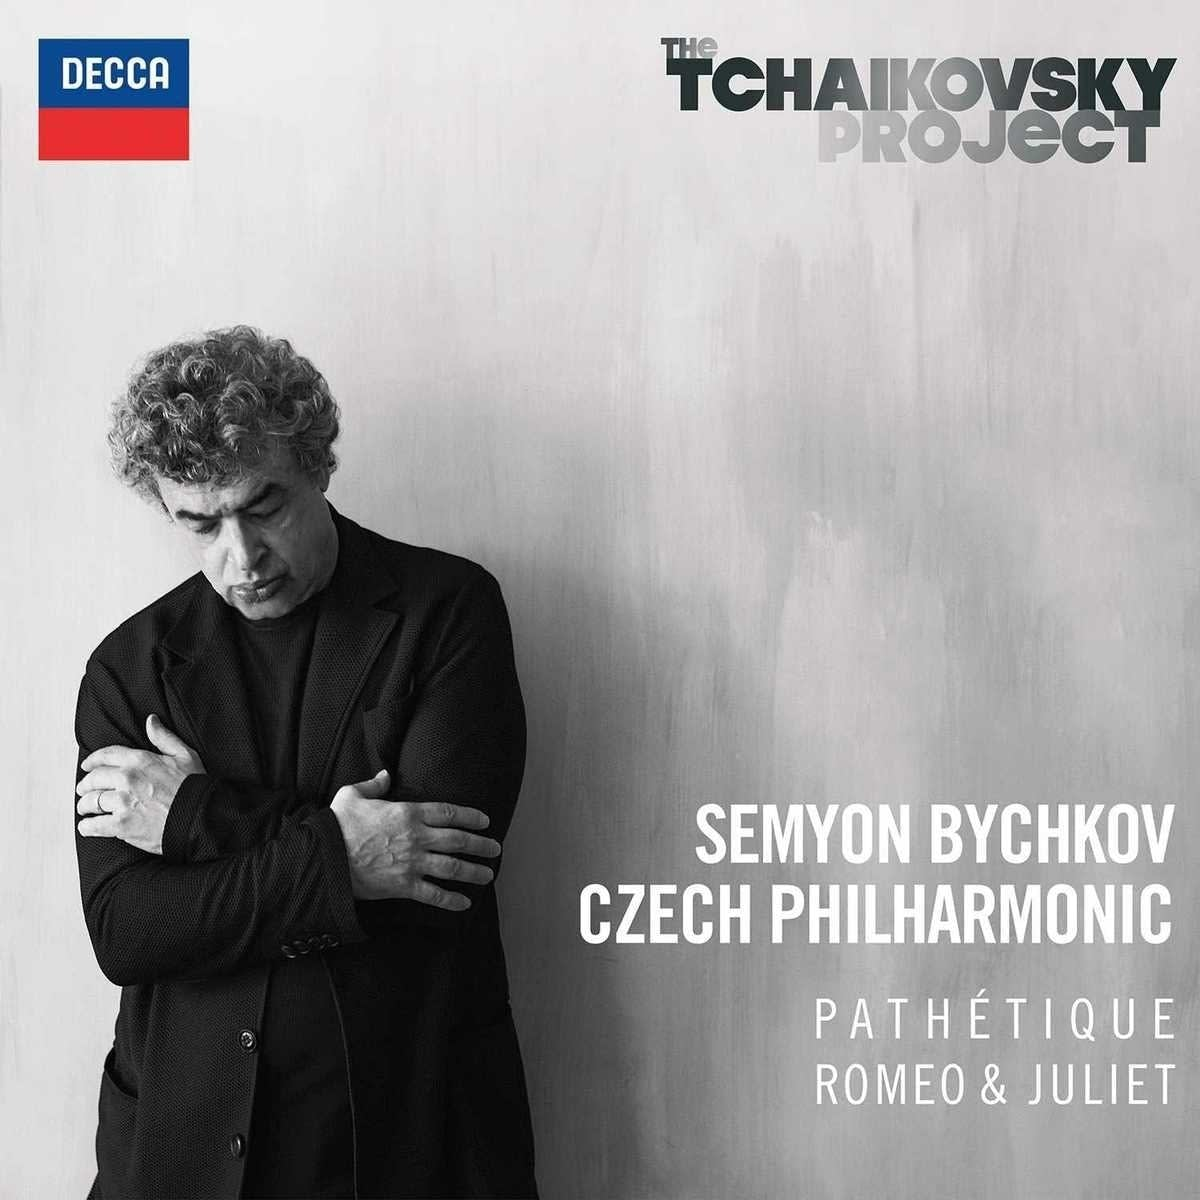 Semyon Bychkov, 'The Tchaikovsky Project'